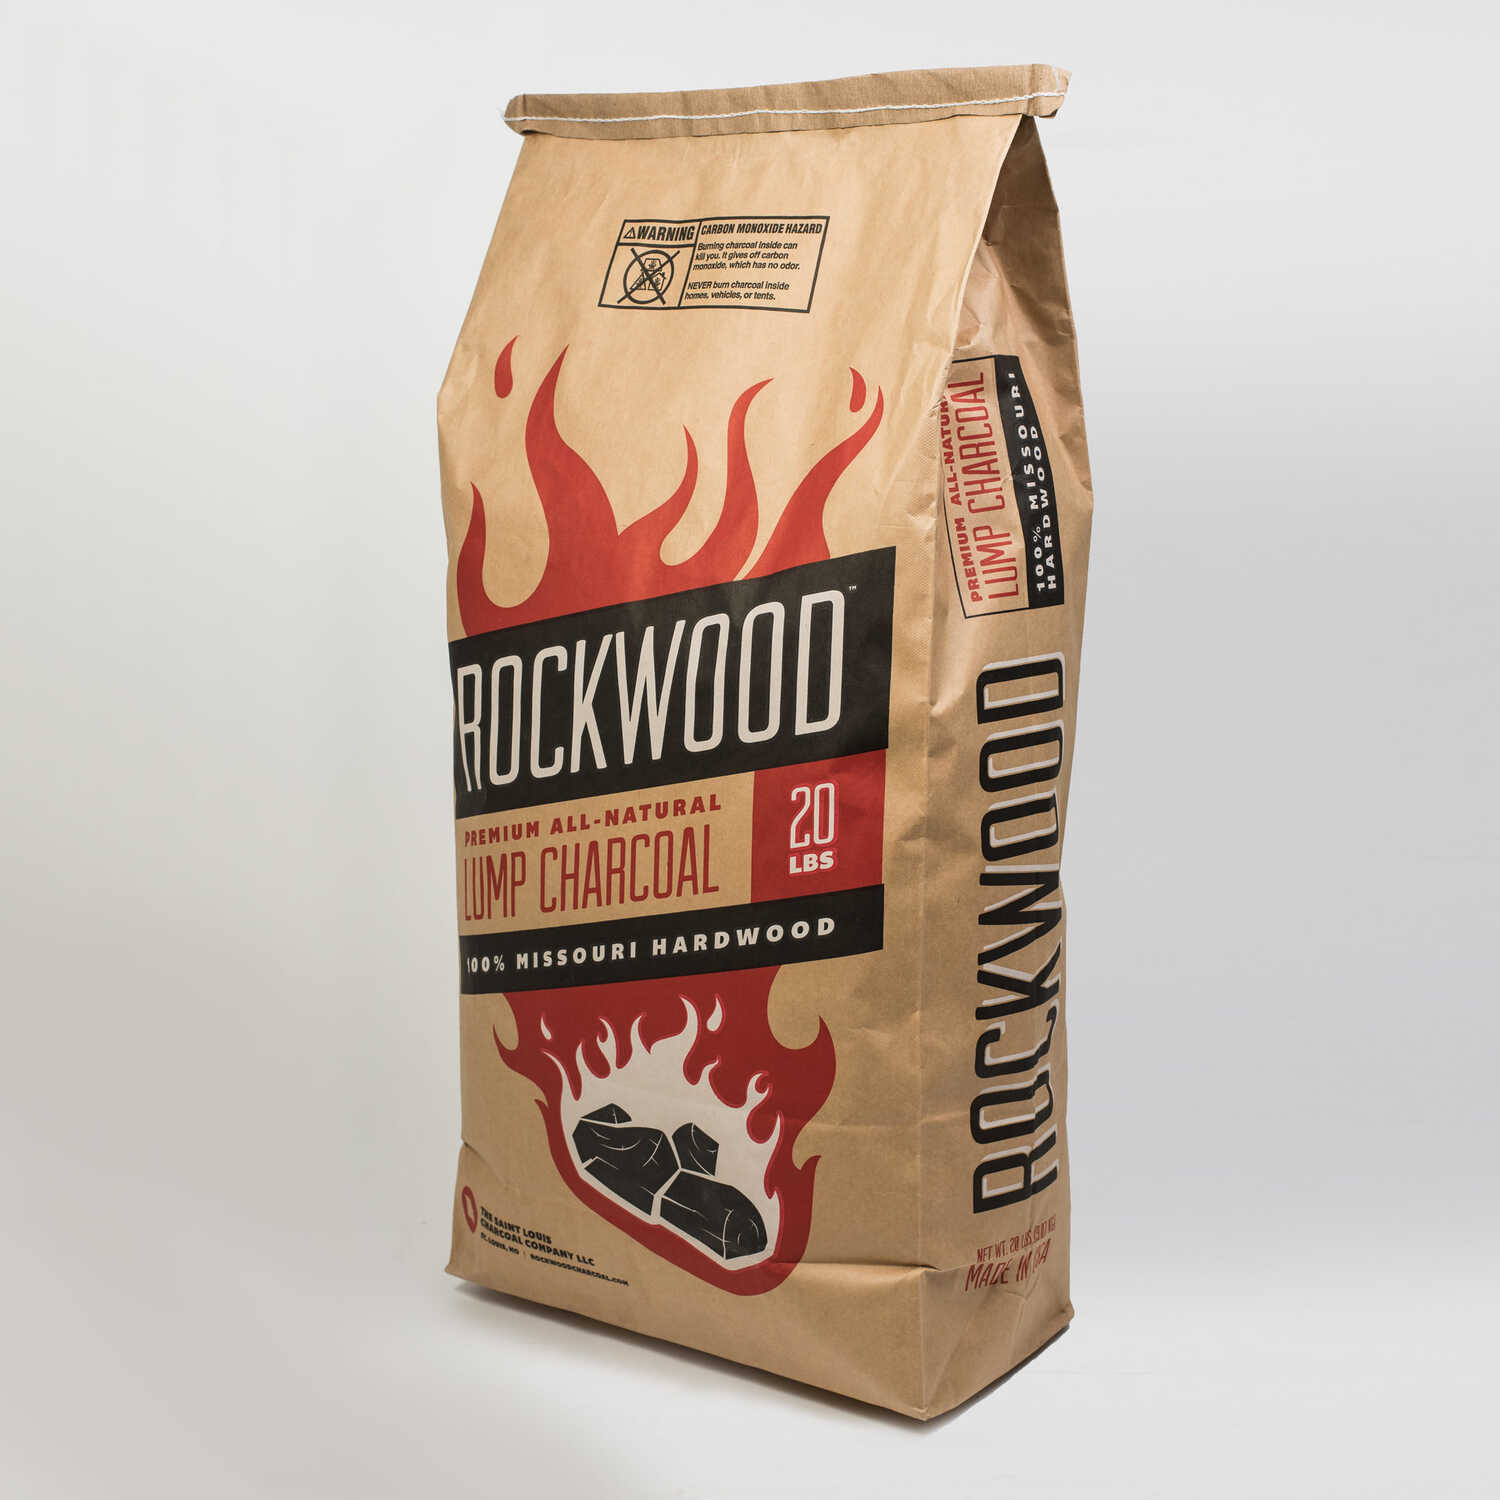 Rockwood  All Natural Hardwood  Lump Charcoal  20 lb.